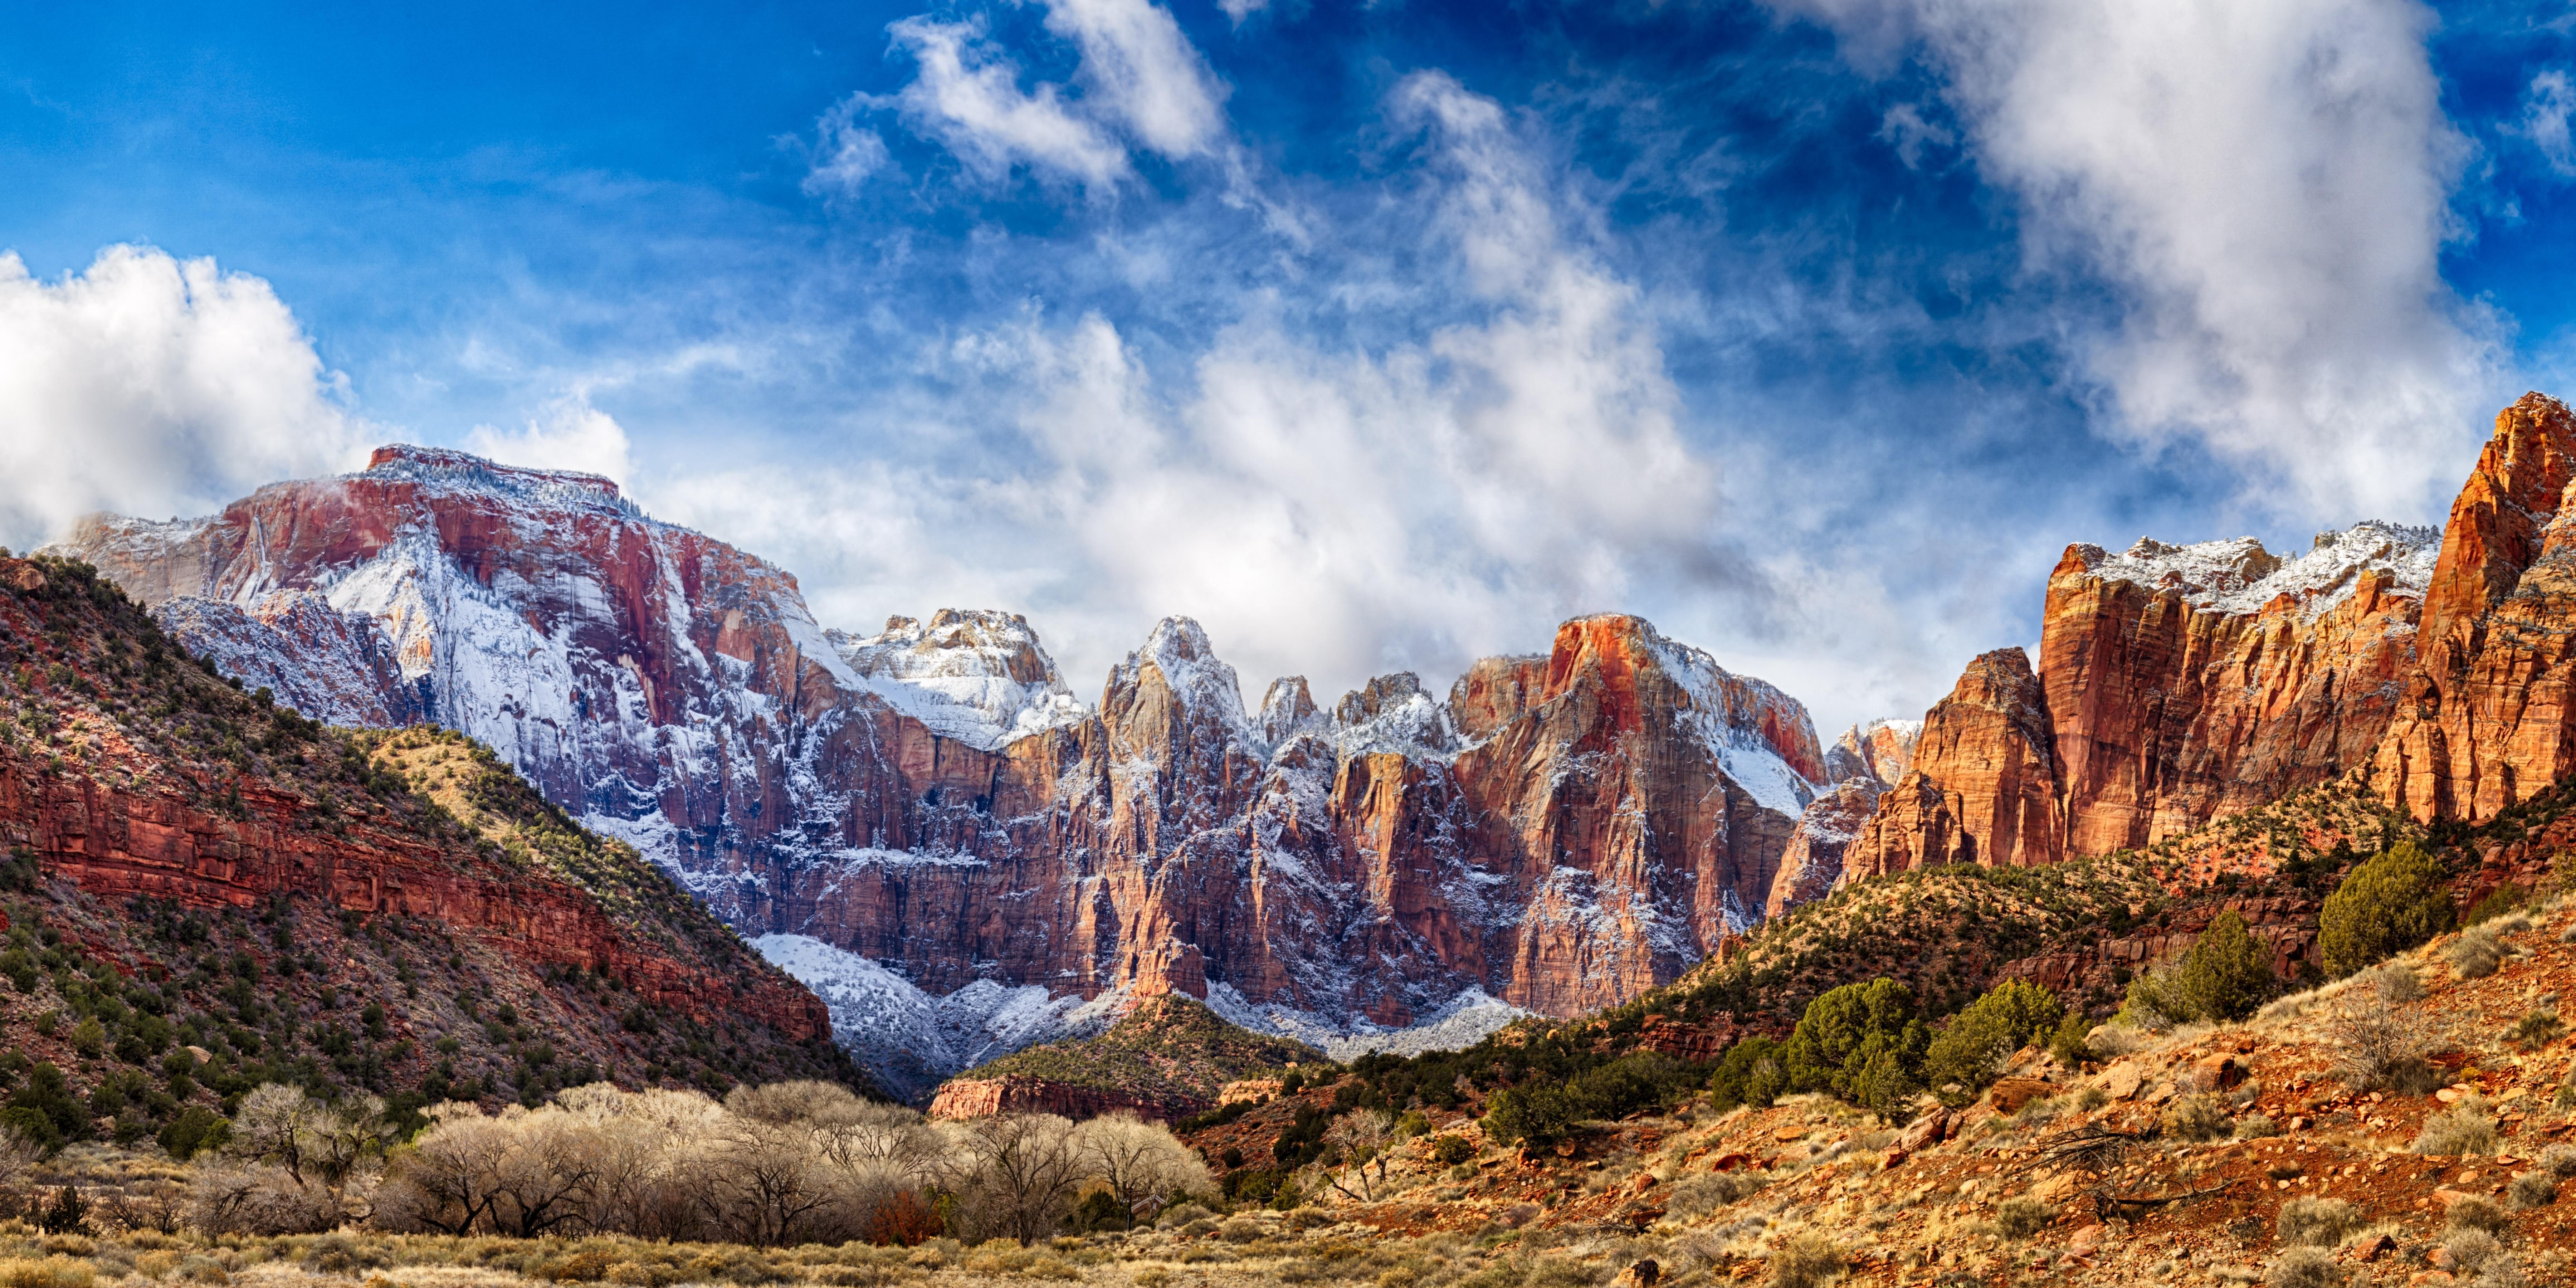 Zion National Park Hdr Panorama A Little Over 120 Photos And About 8 Hours Of Time But I Still Look At It And Cant Believe Photo Panorama Zion National Park